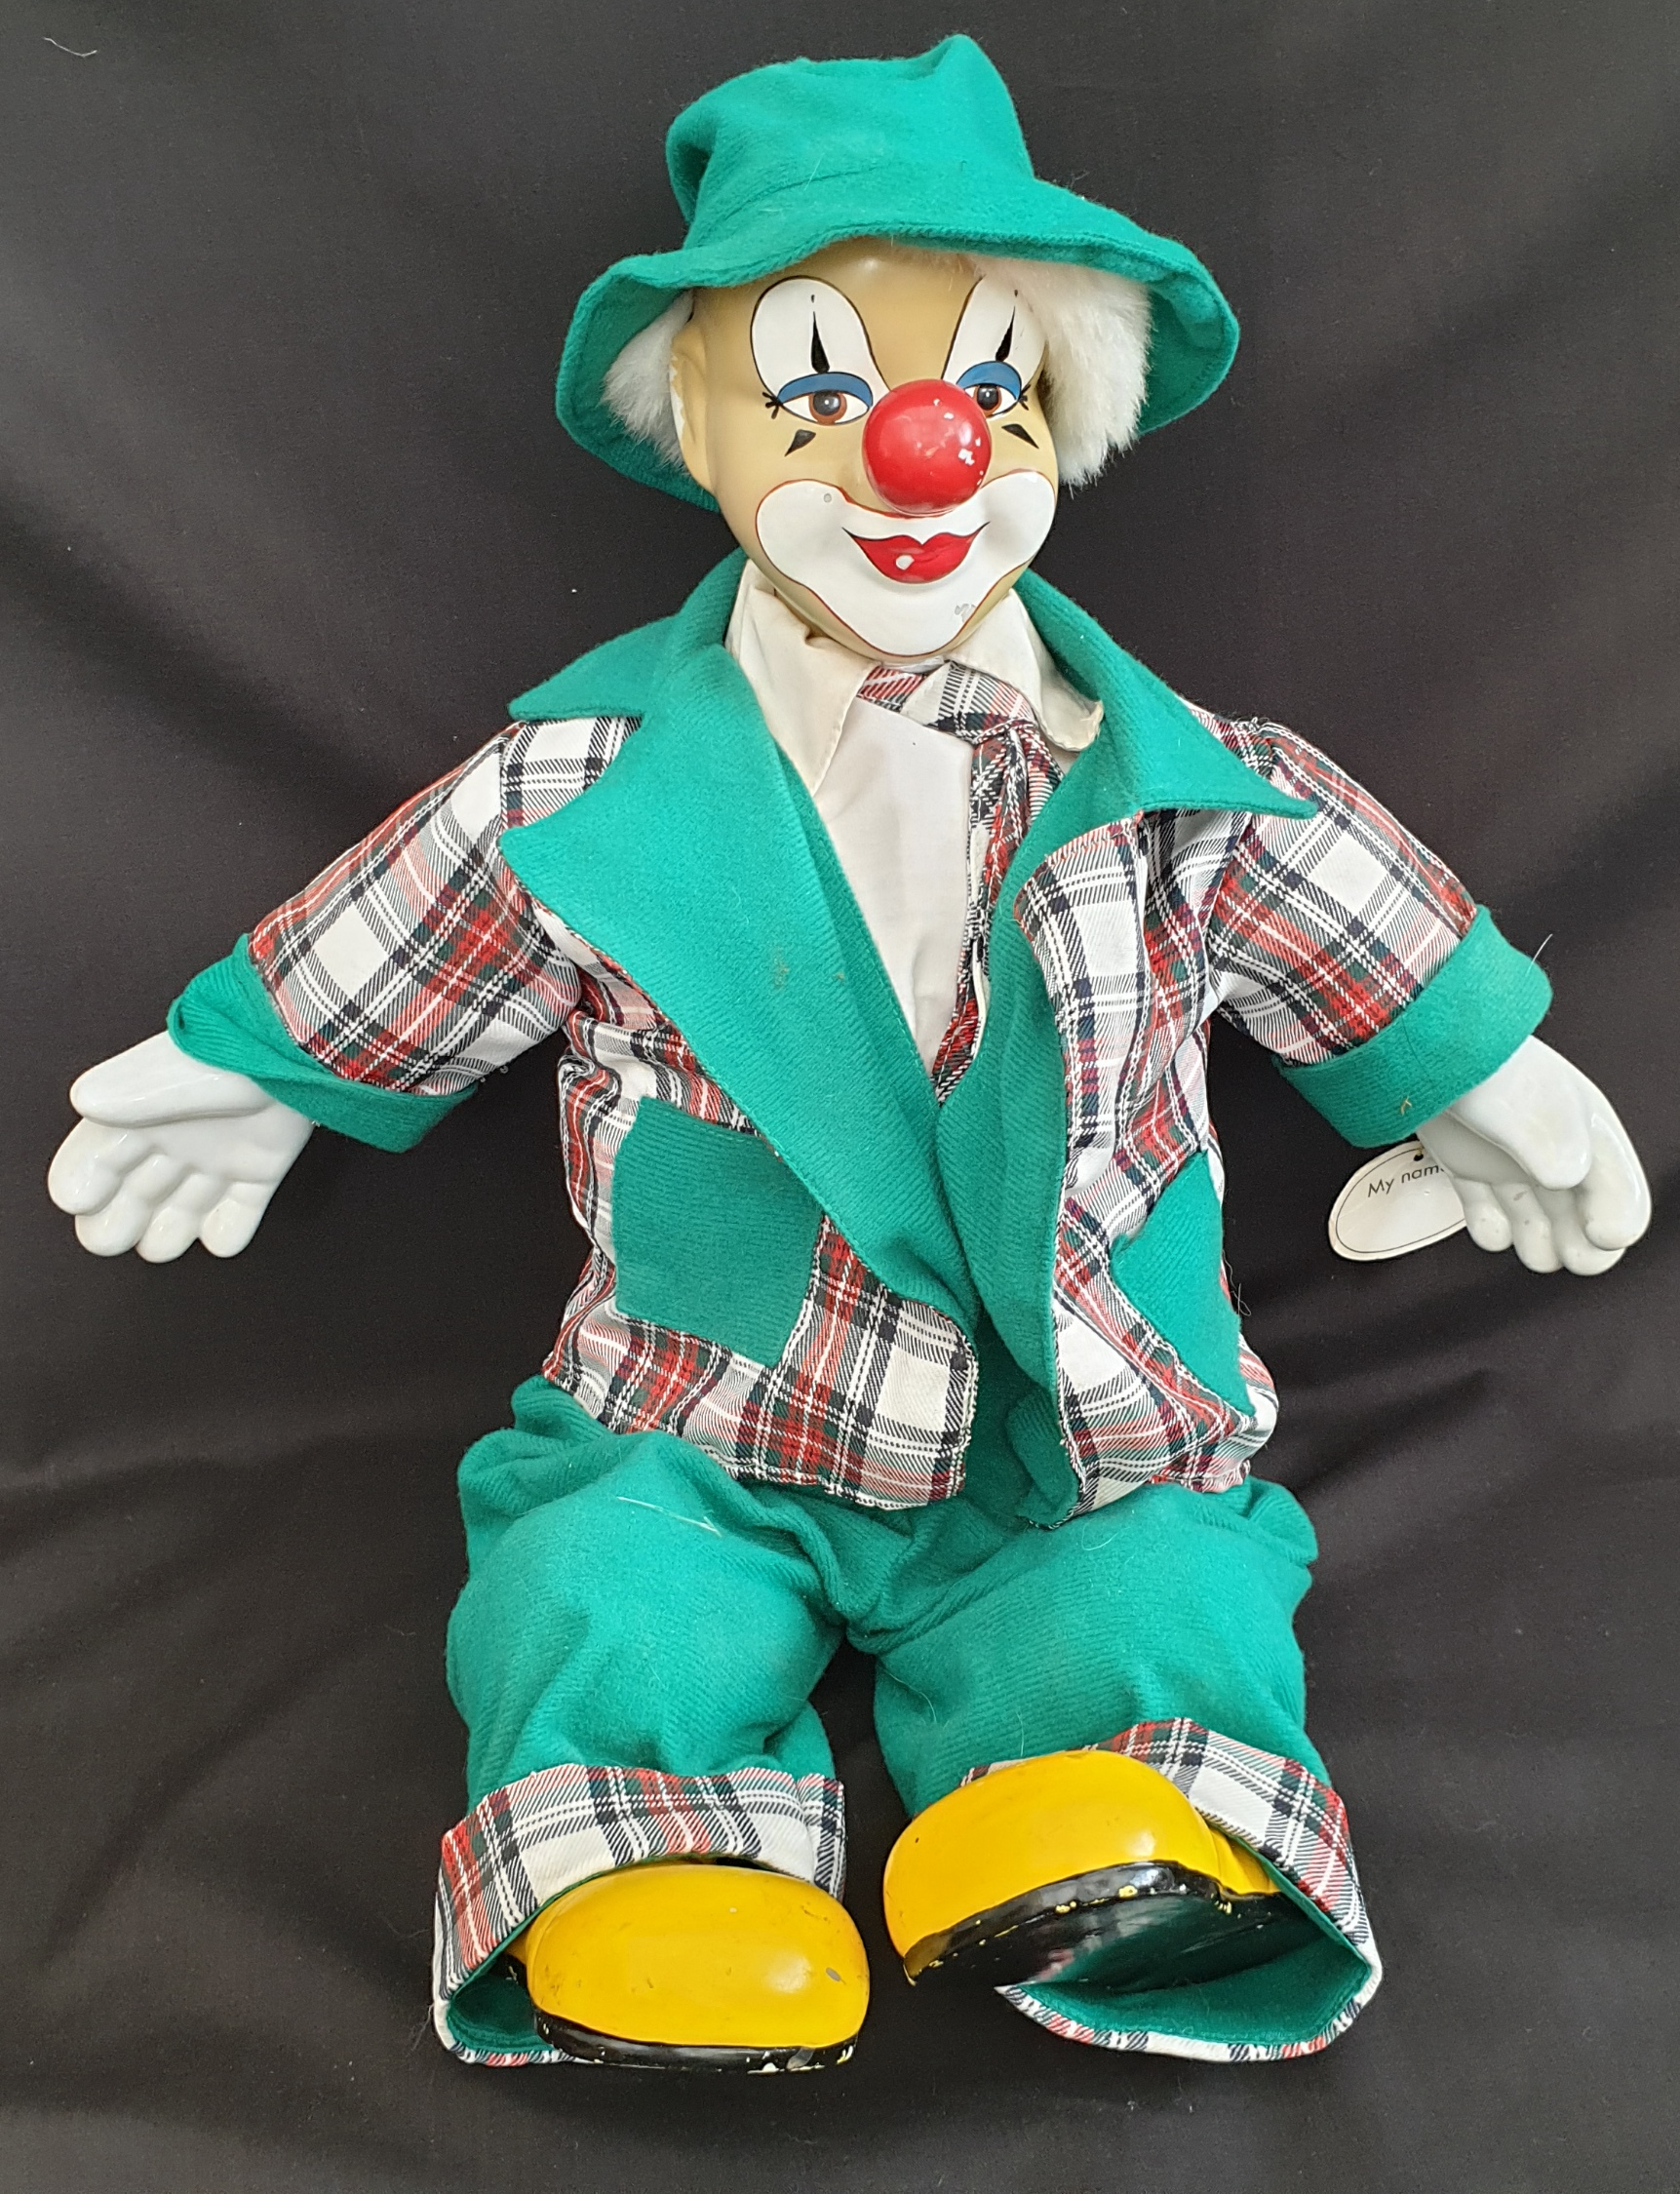 Vintage Collectable Model Clown One on A Mono Cycle - Image 3 of 4